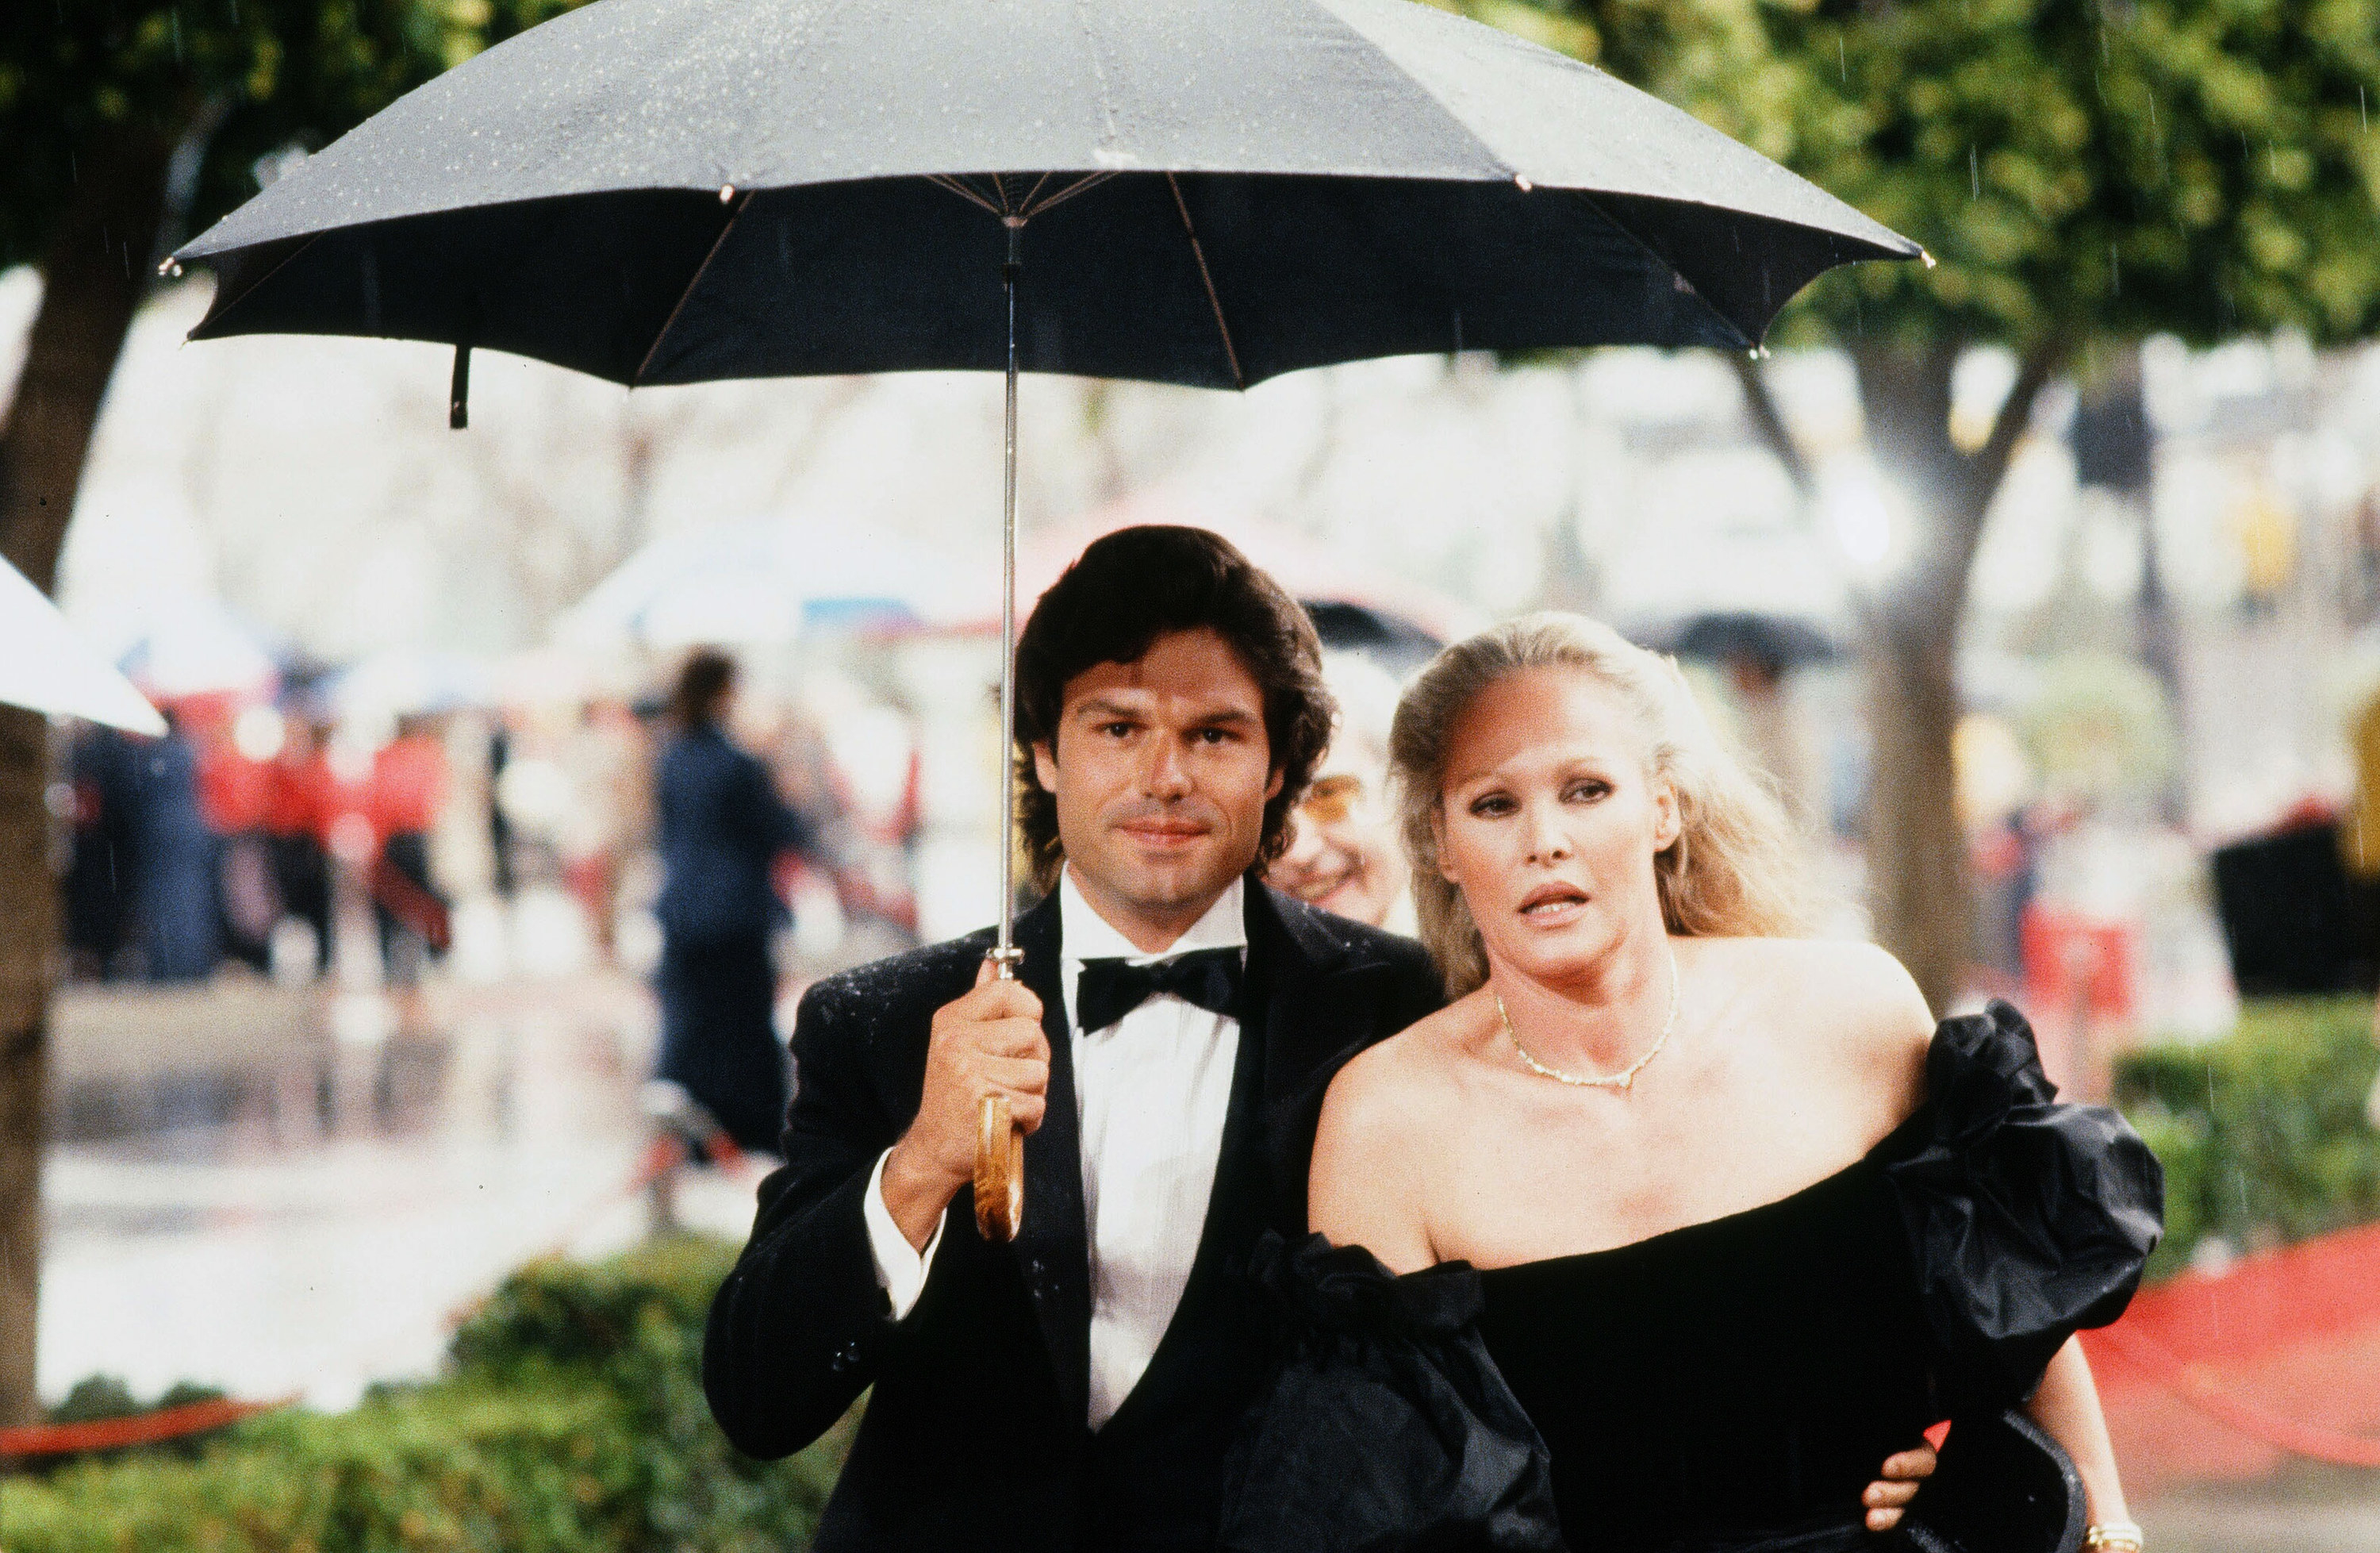 Actress Ursula Andress with actor Harry Hamlin arrive to the 54th Academy Awards at Dorothy Chandler Pavilion in Los Angeles,California